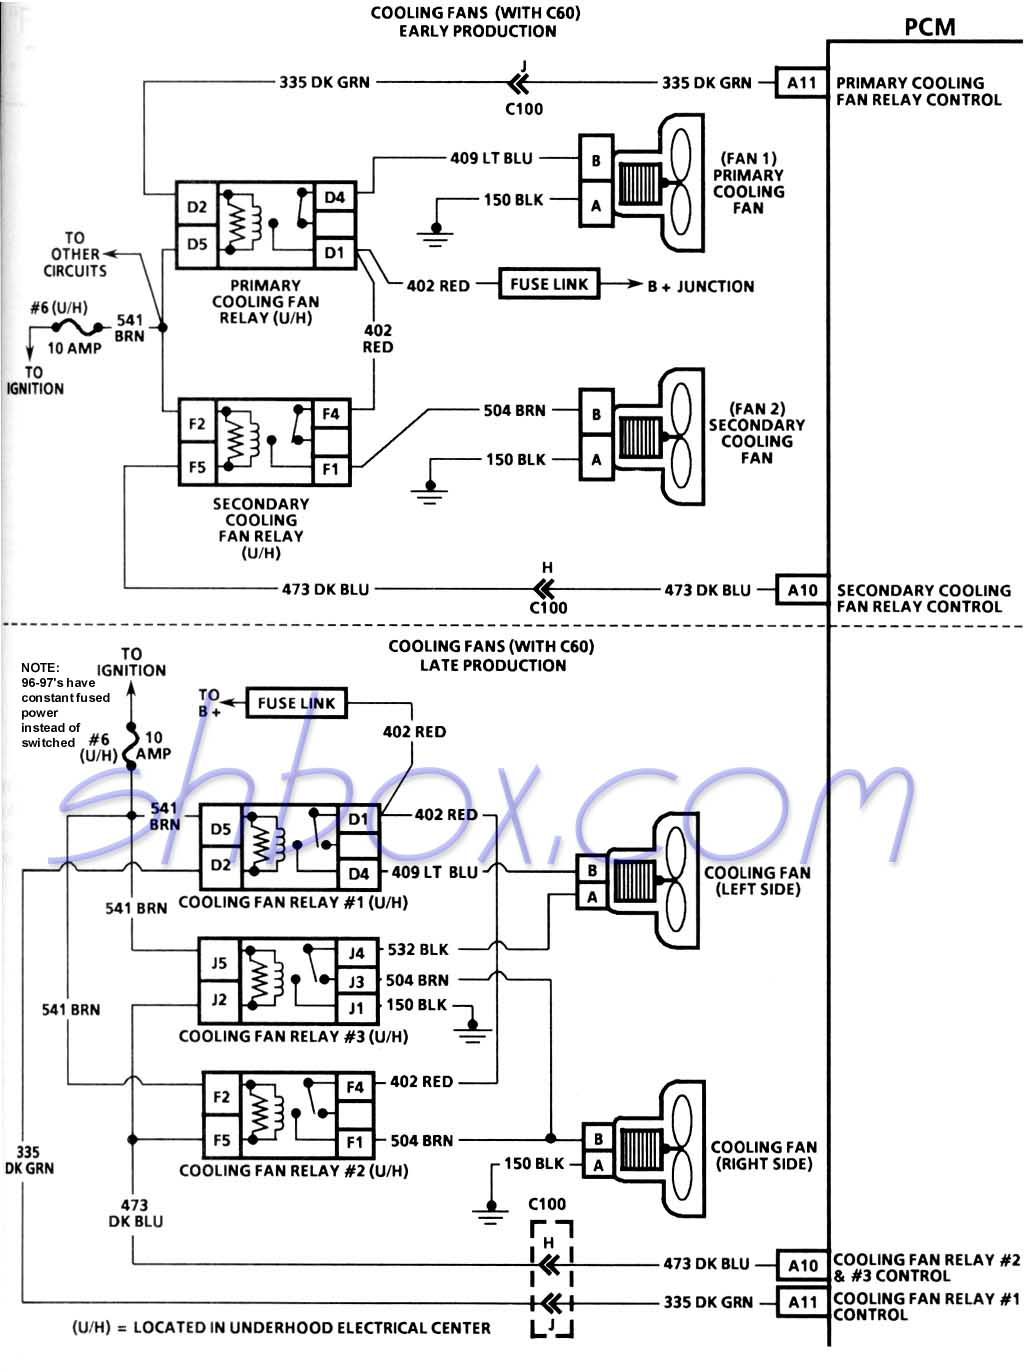 1999 eldorado steering wheel wiring diagram